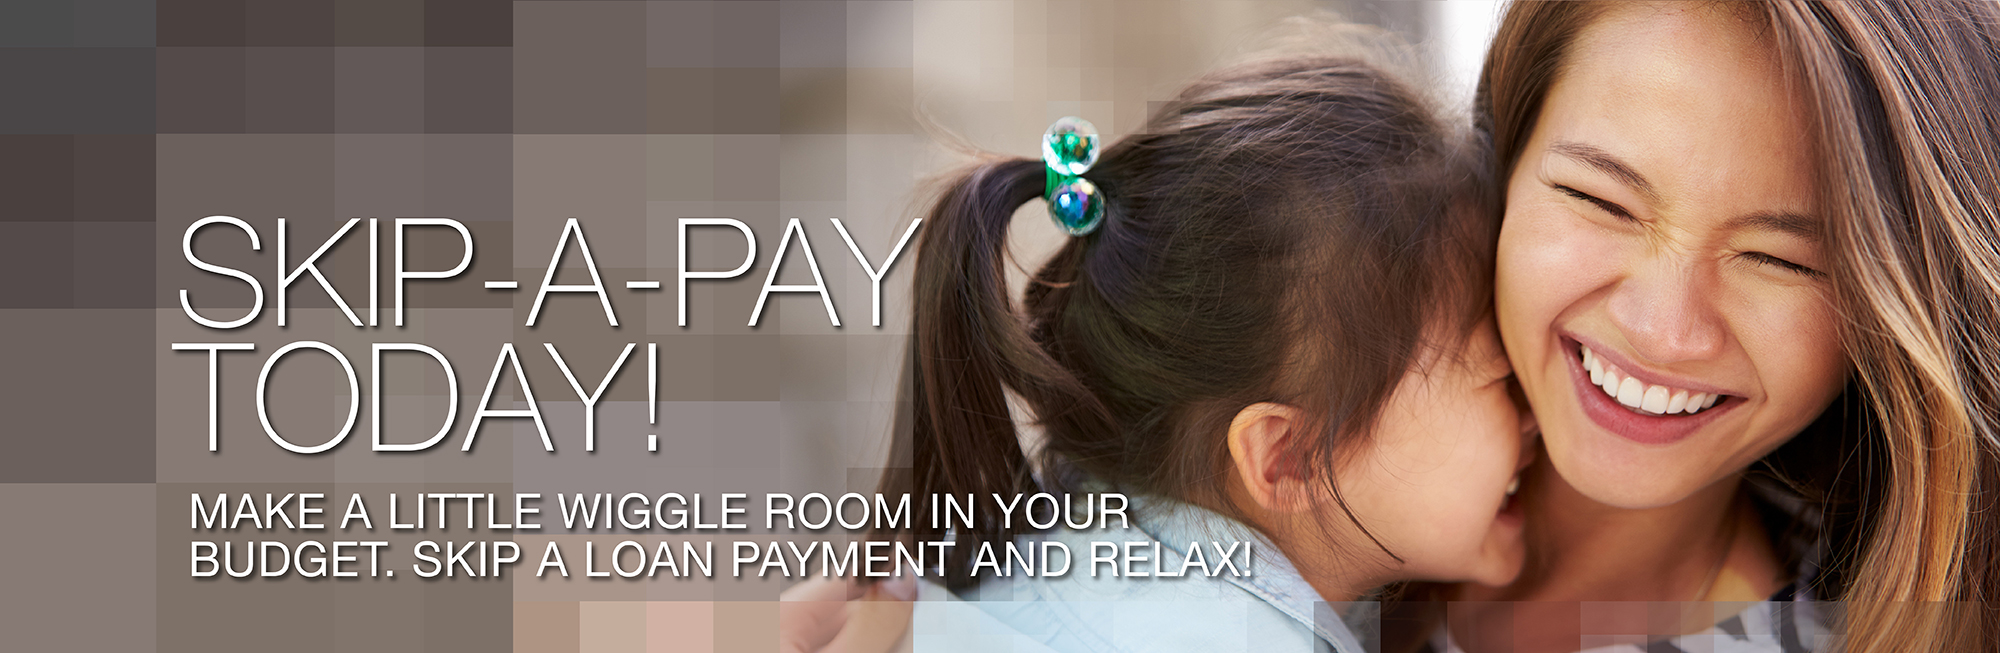 SKIP-A-PAY and relax!